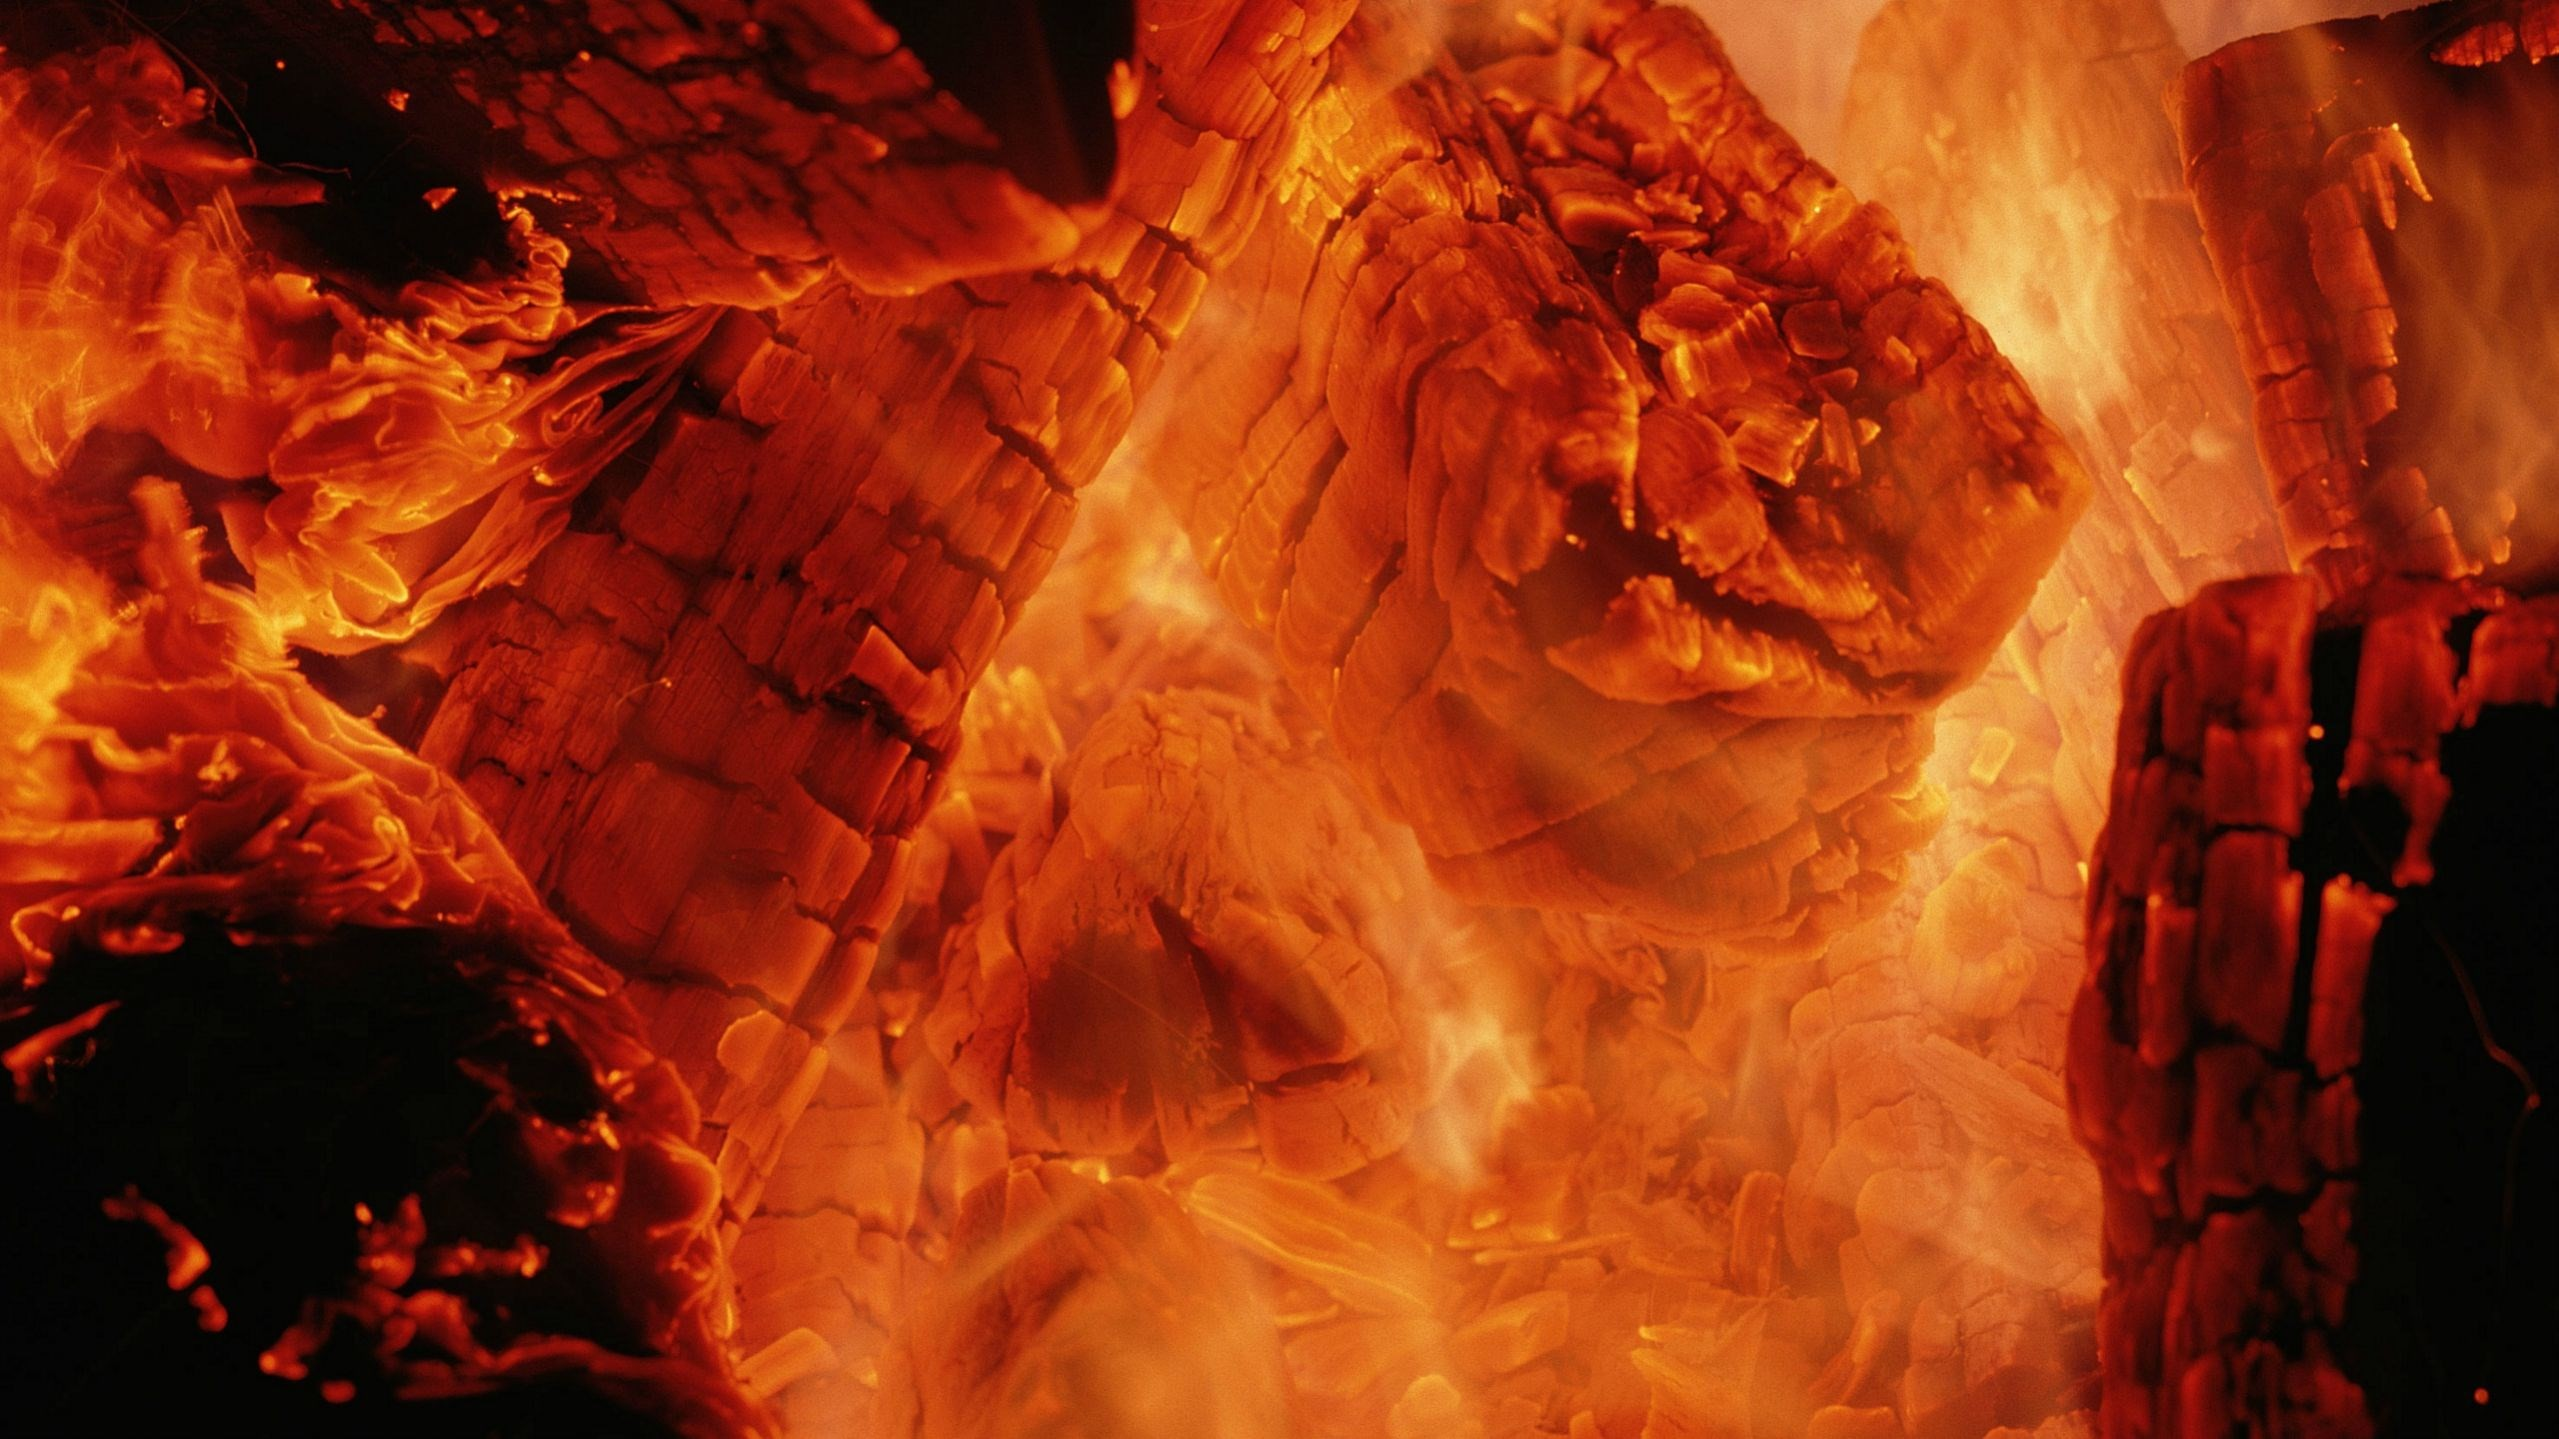 Fire Background Hd 183 ① Download Free Stunning Hd Wallpapers